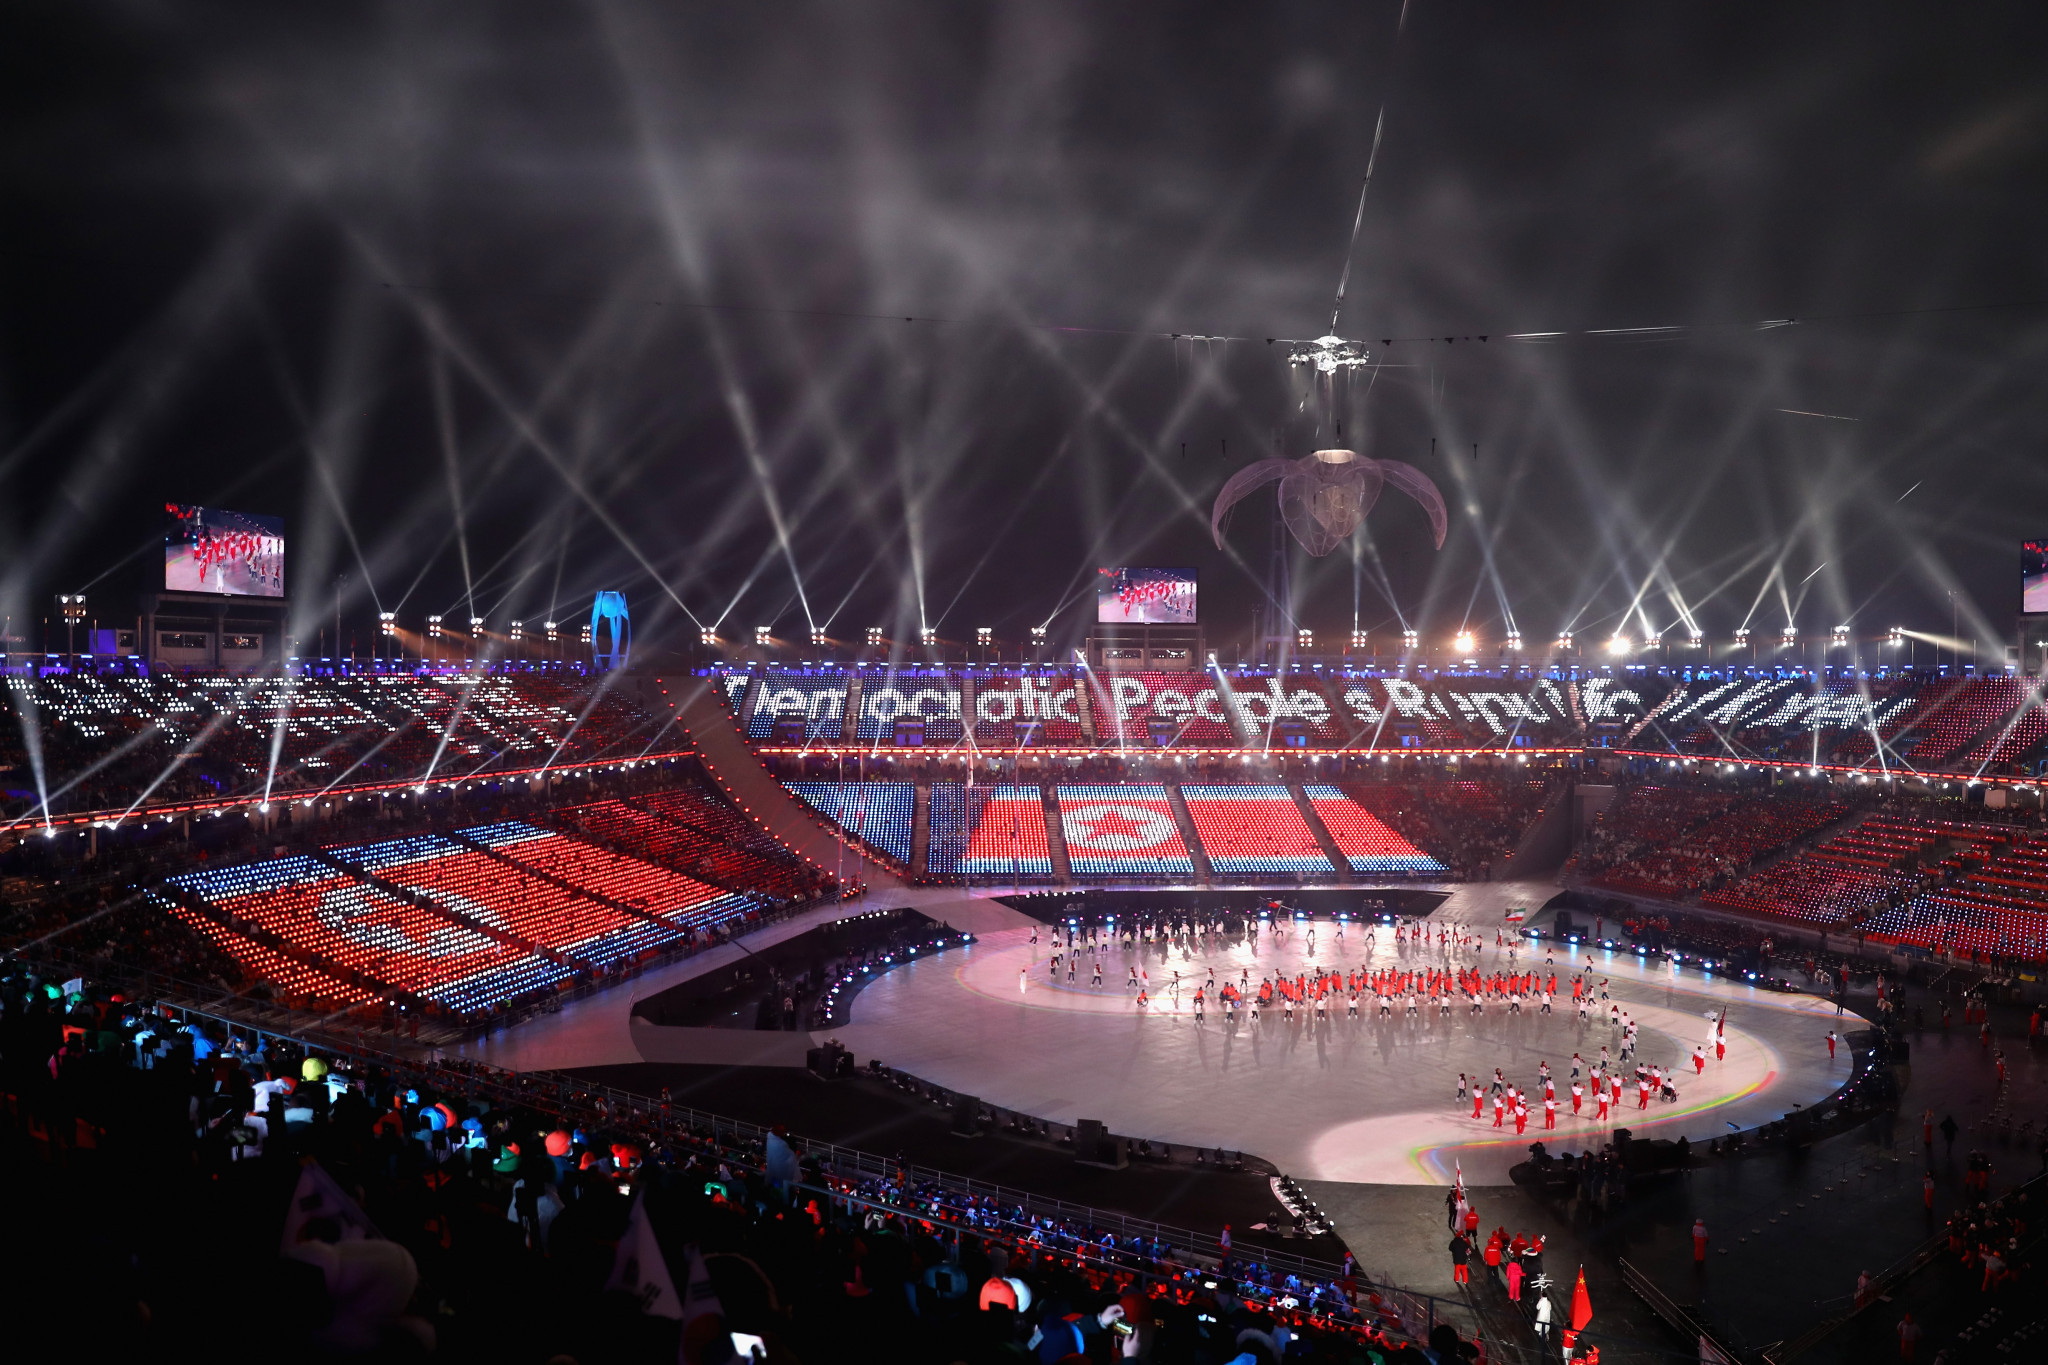 IOC confirm request made to United Nations to allow export of sports equipment into North Korea but US reportedly block it